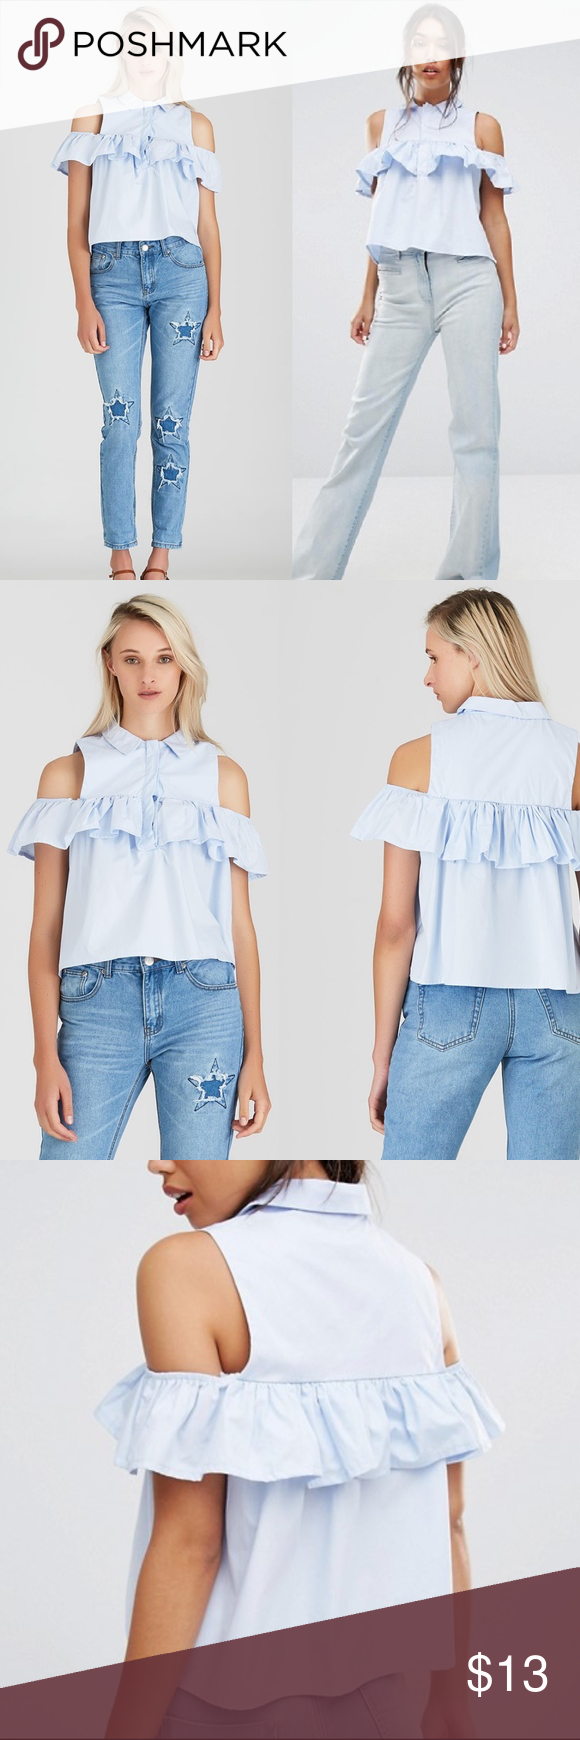 d1e51d87cc2 BOOHOO Light Blue Frill Cold Shoulder Shirt sz M Boohoo Frill Cold Shoulder  Shirt COLOR: